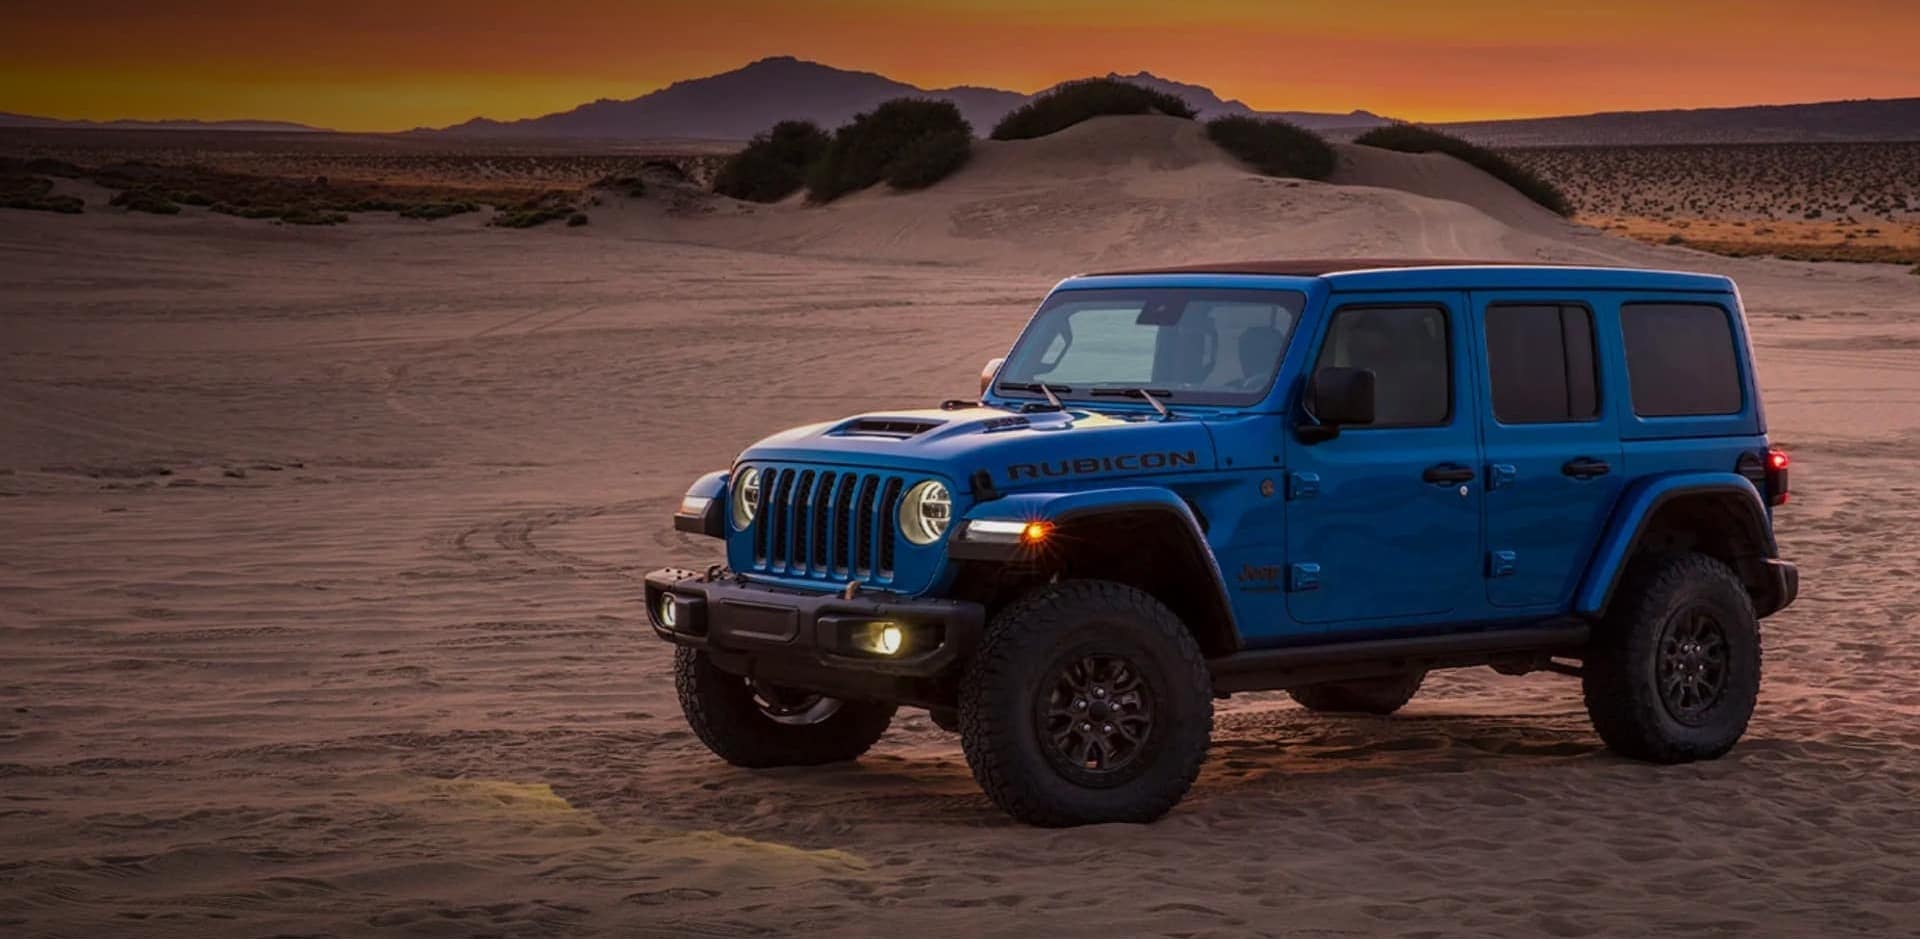 Blue Jeep in the desert